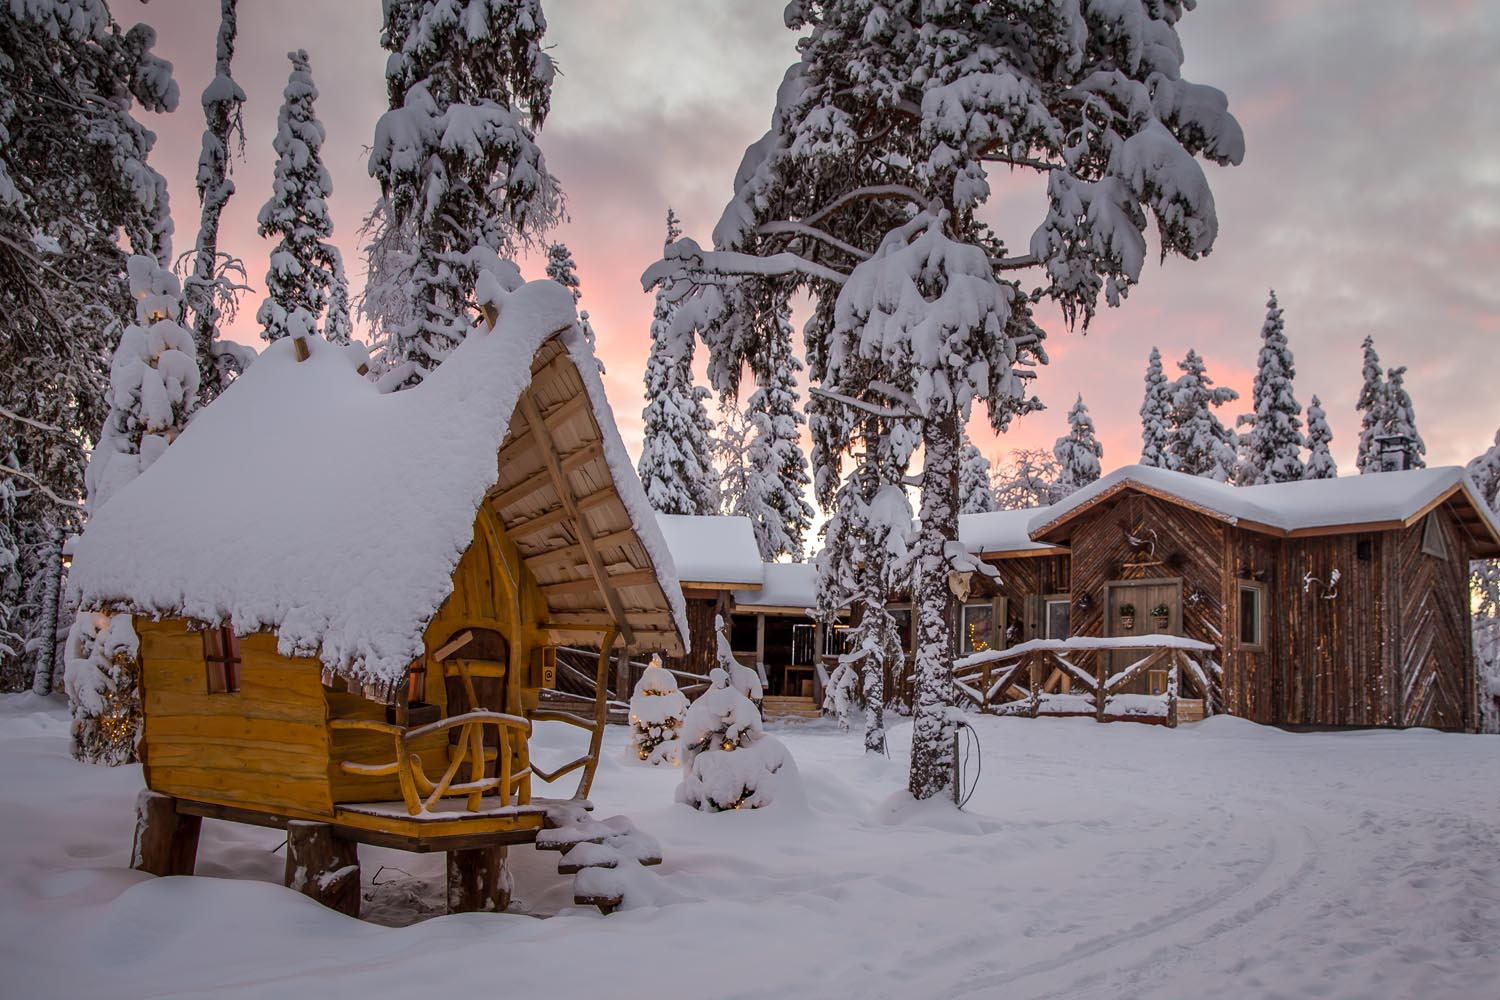 Tonttula Elves Hideaway - 9 Incredible places to stay in Finnish Lapland